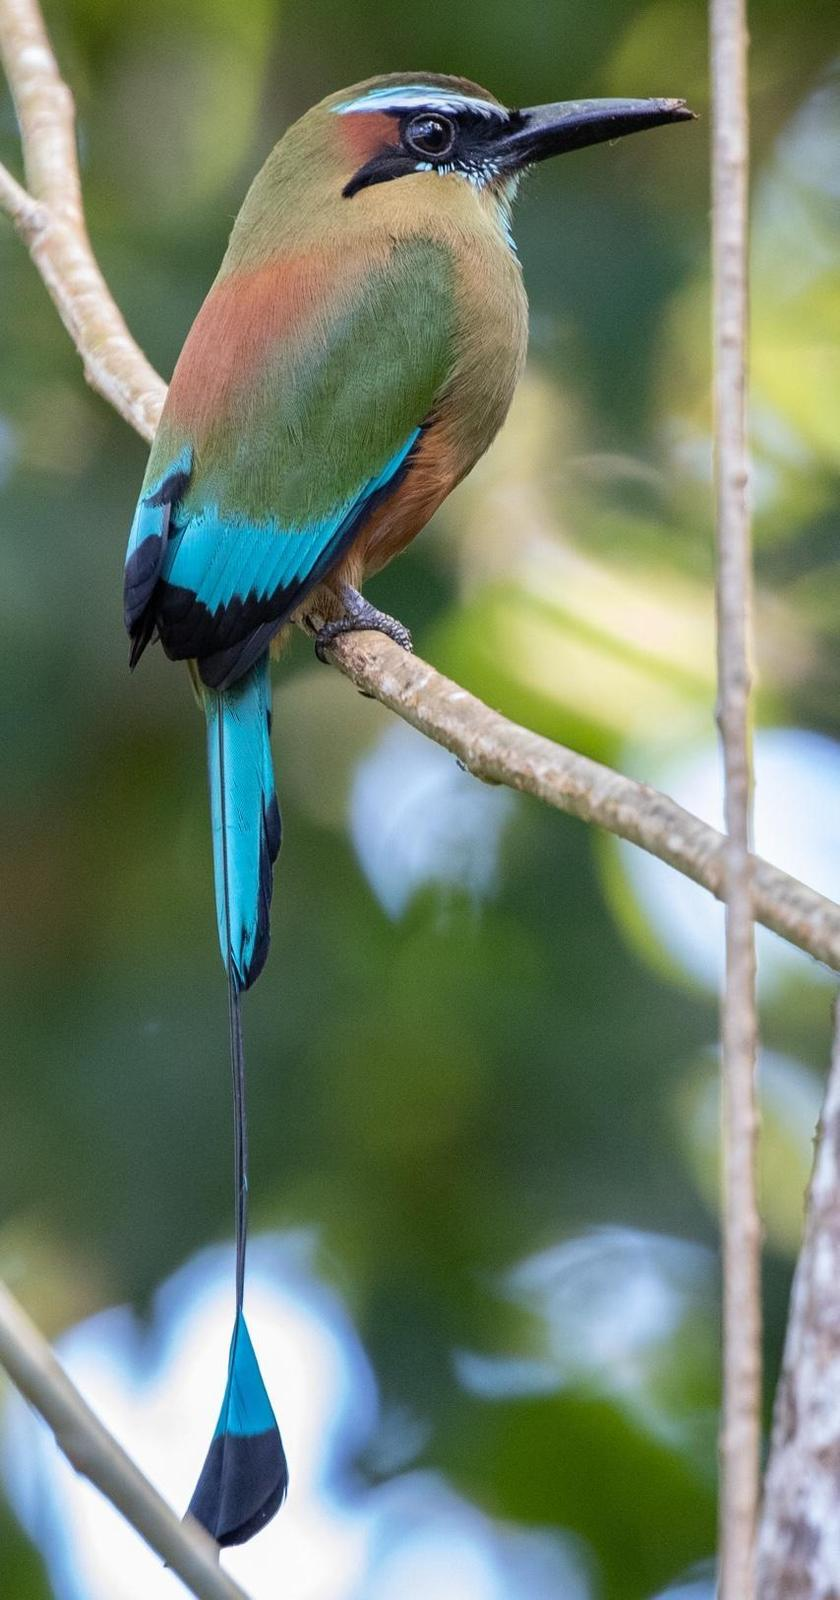 Turquoise-browed Motmot Photo by Kate Persons